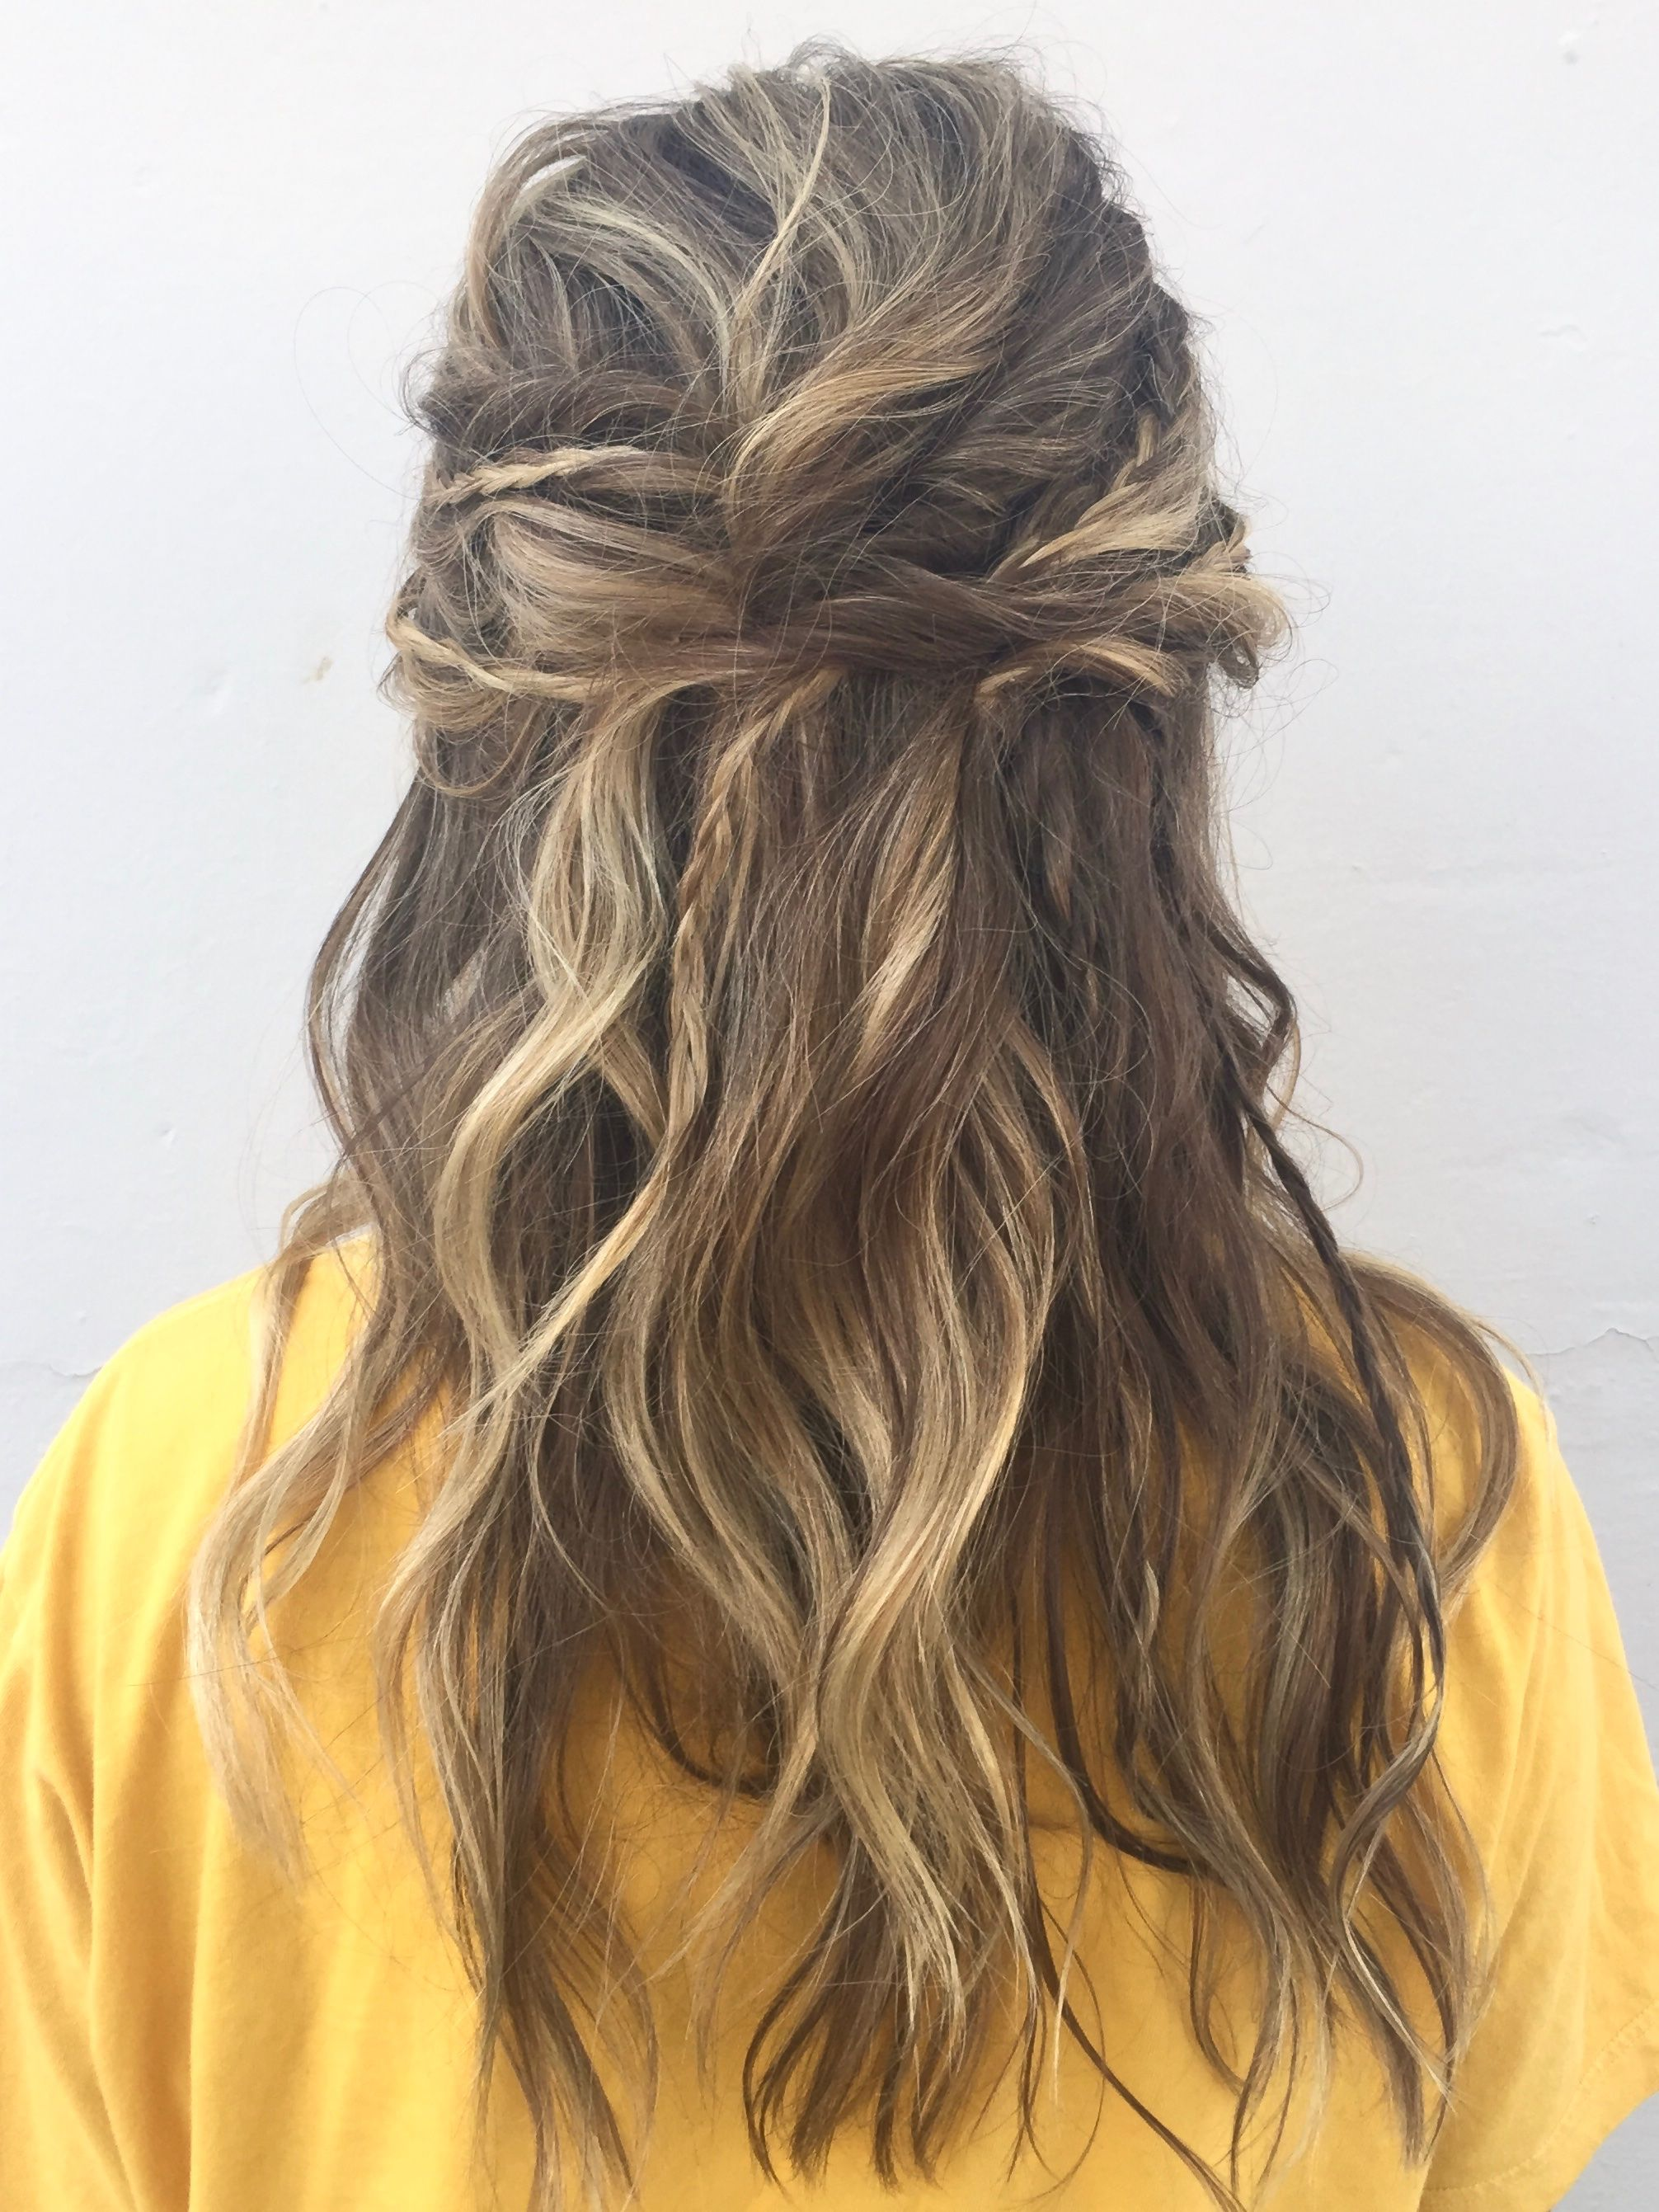 boho hair prom updo with braids